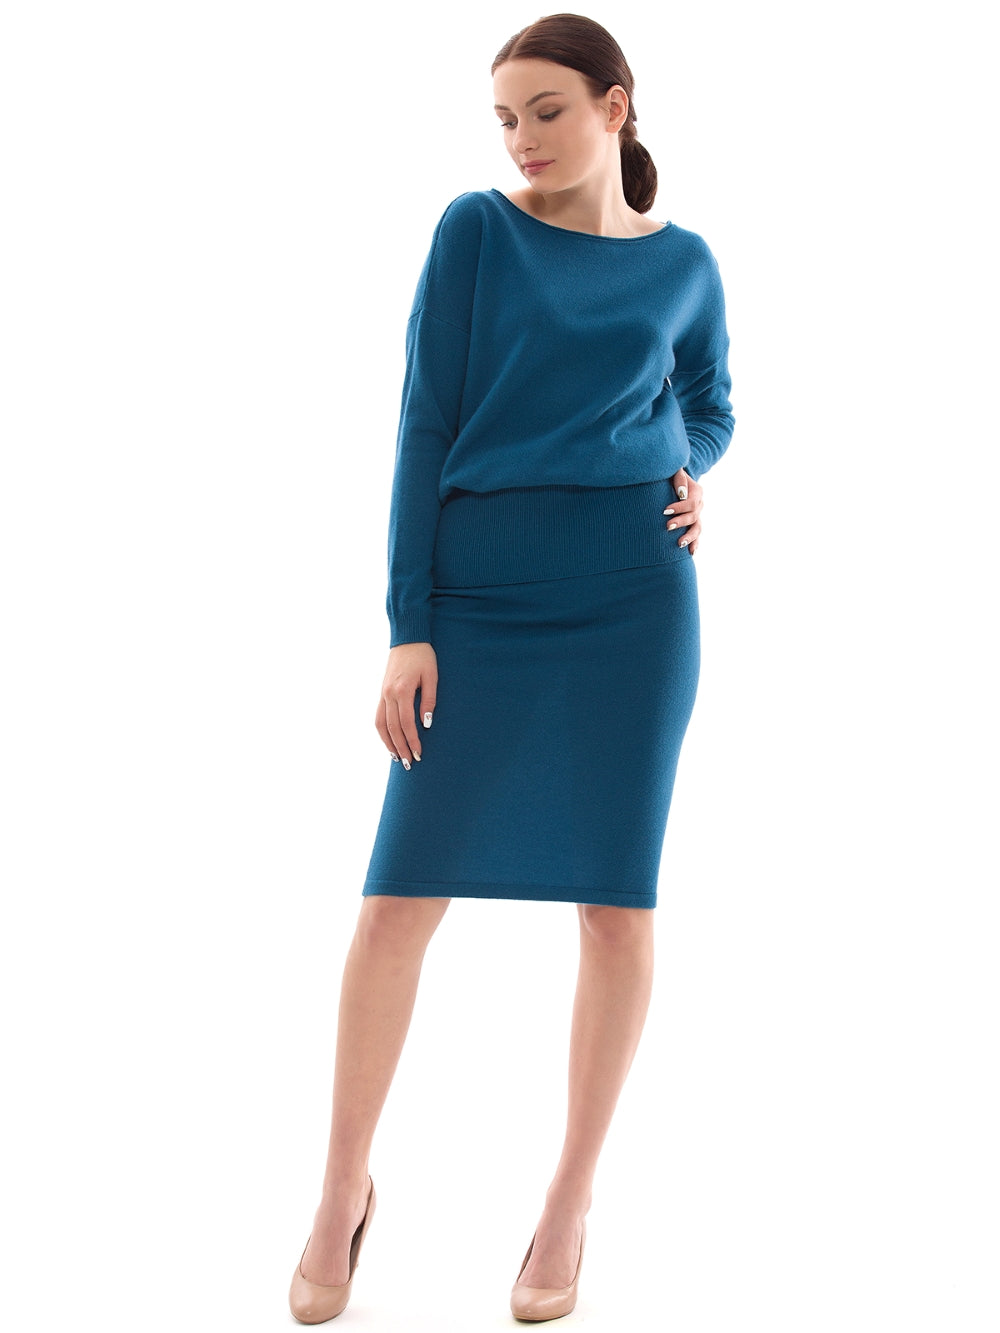 Inari Women's petrol cashmere skirt - front side - 100% high-quality cashmere - Inari-clothing.fi